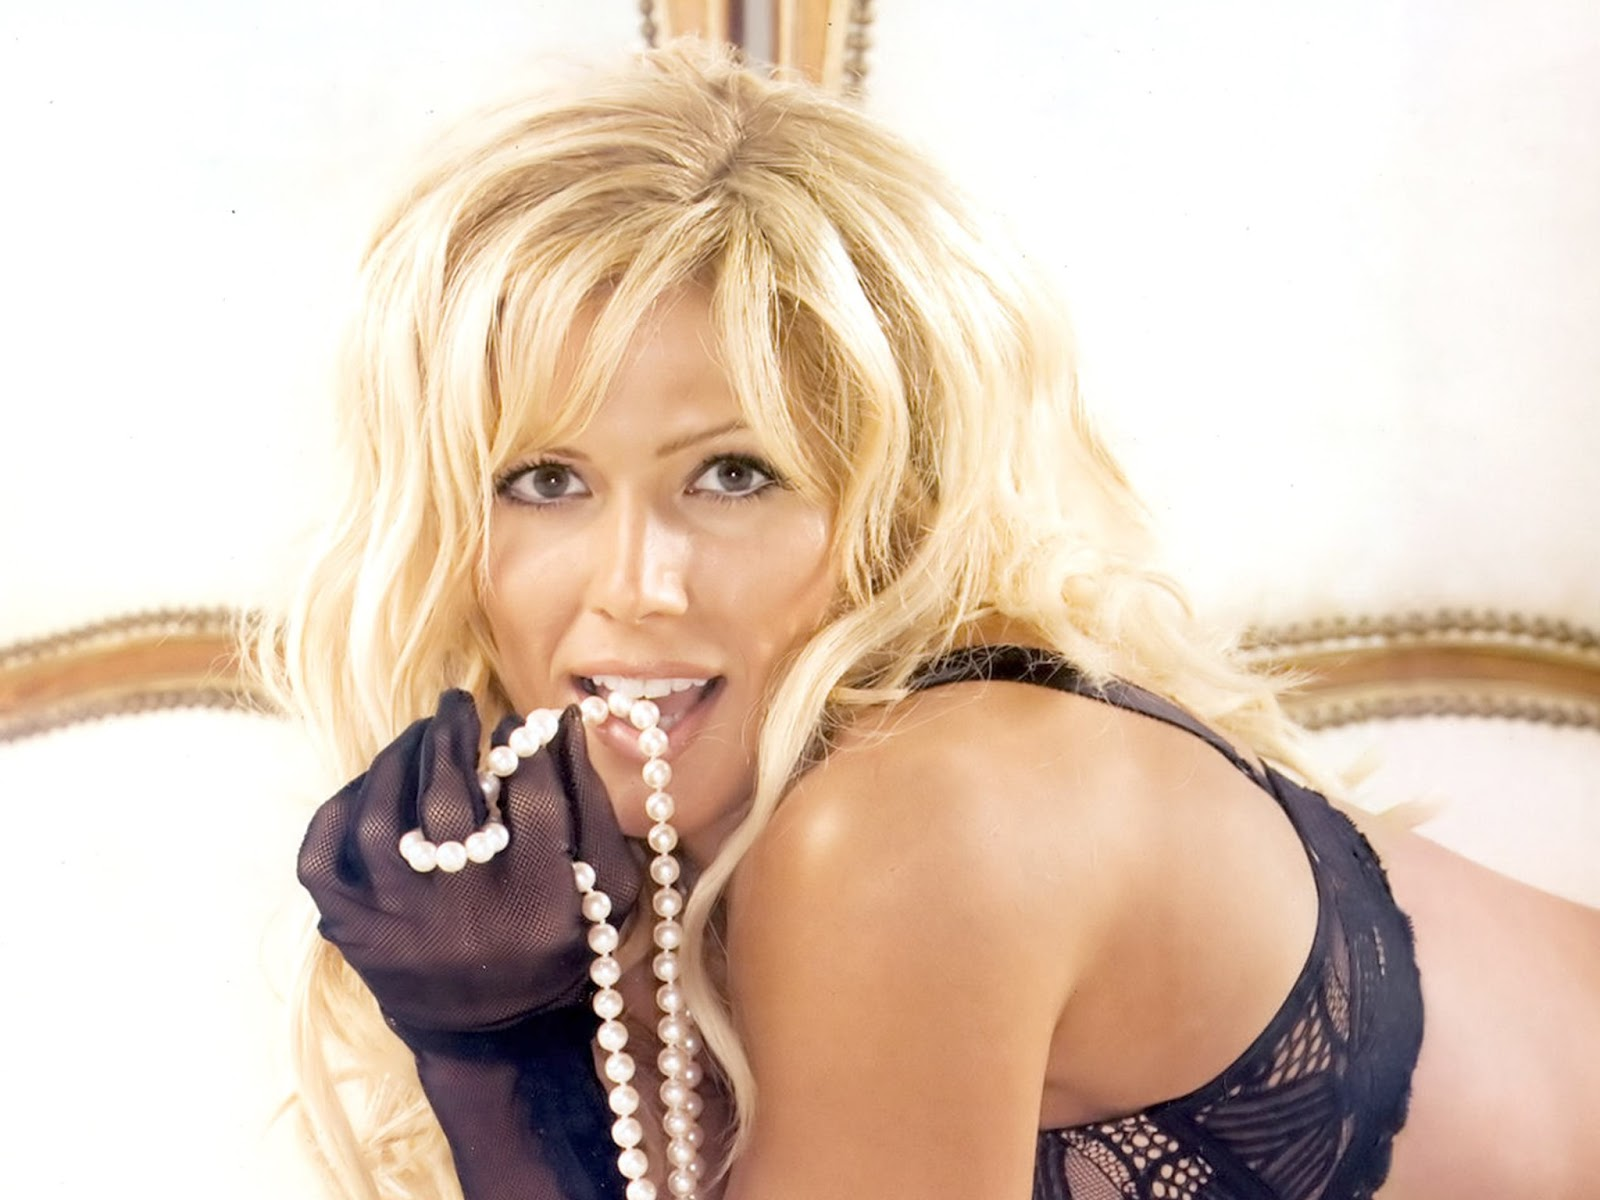 Fill wwe torrie wilson hot apologise, but